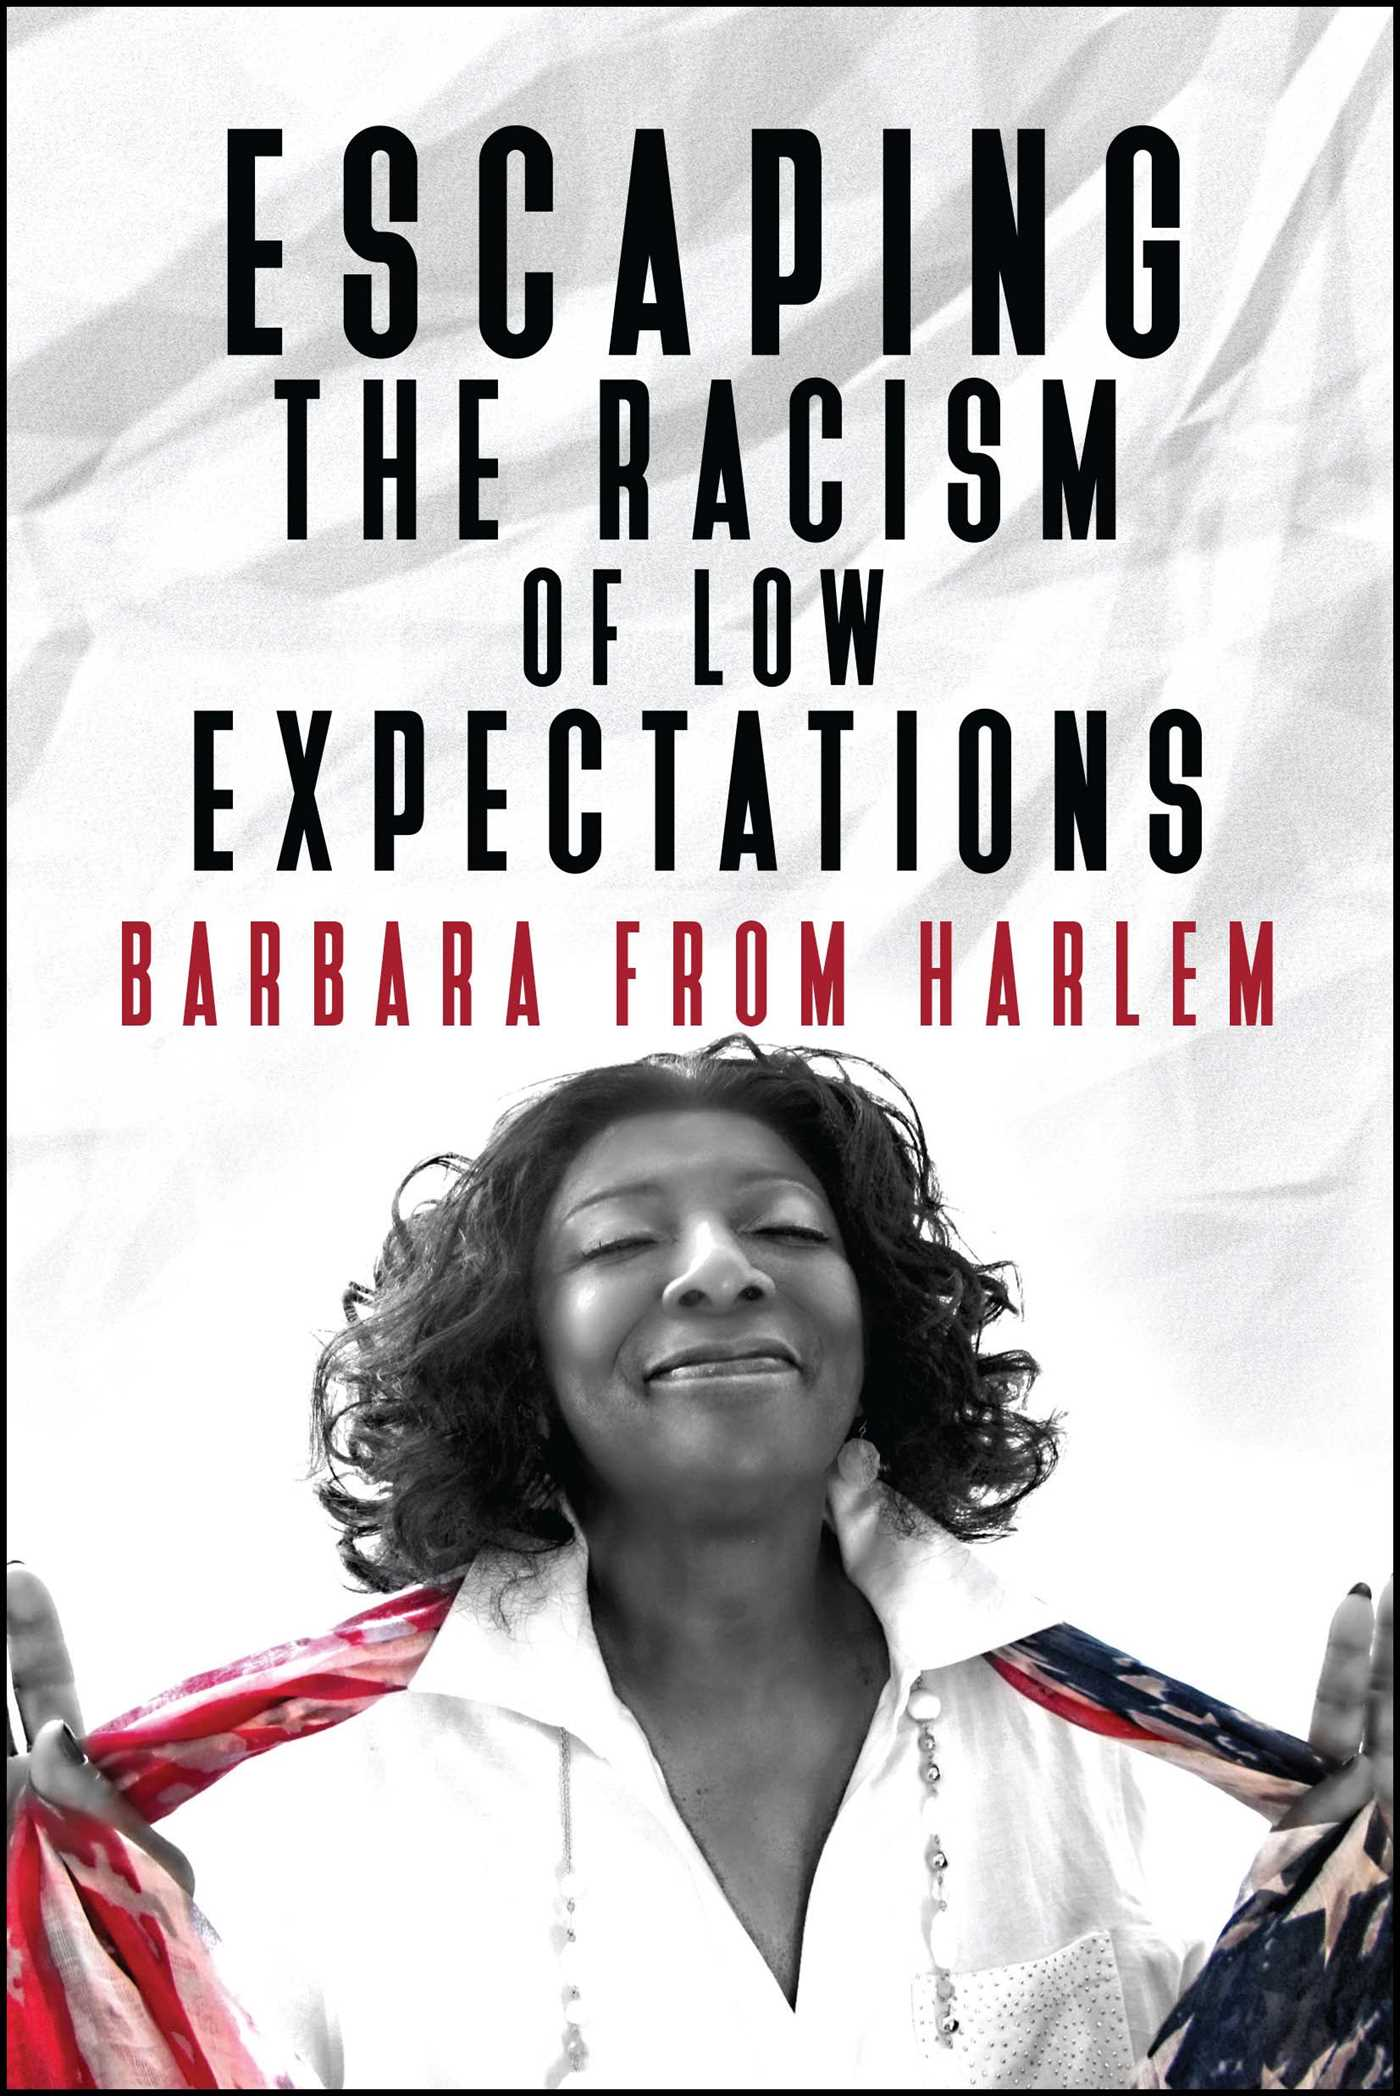 Escaping the racism of low expectations 9781682615850 hr